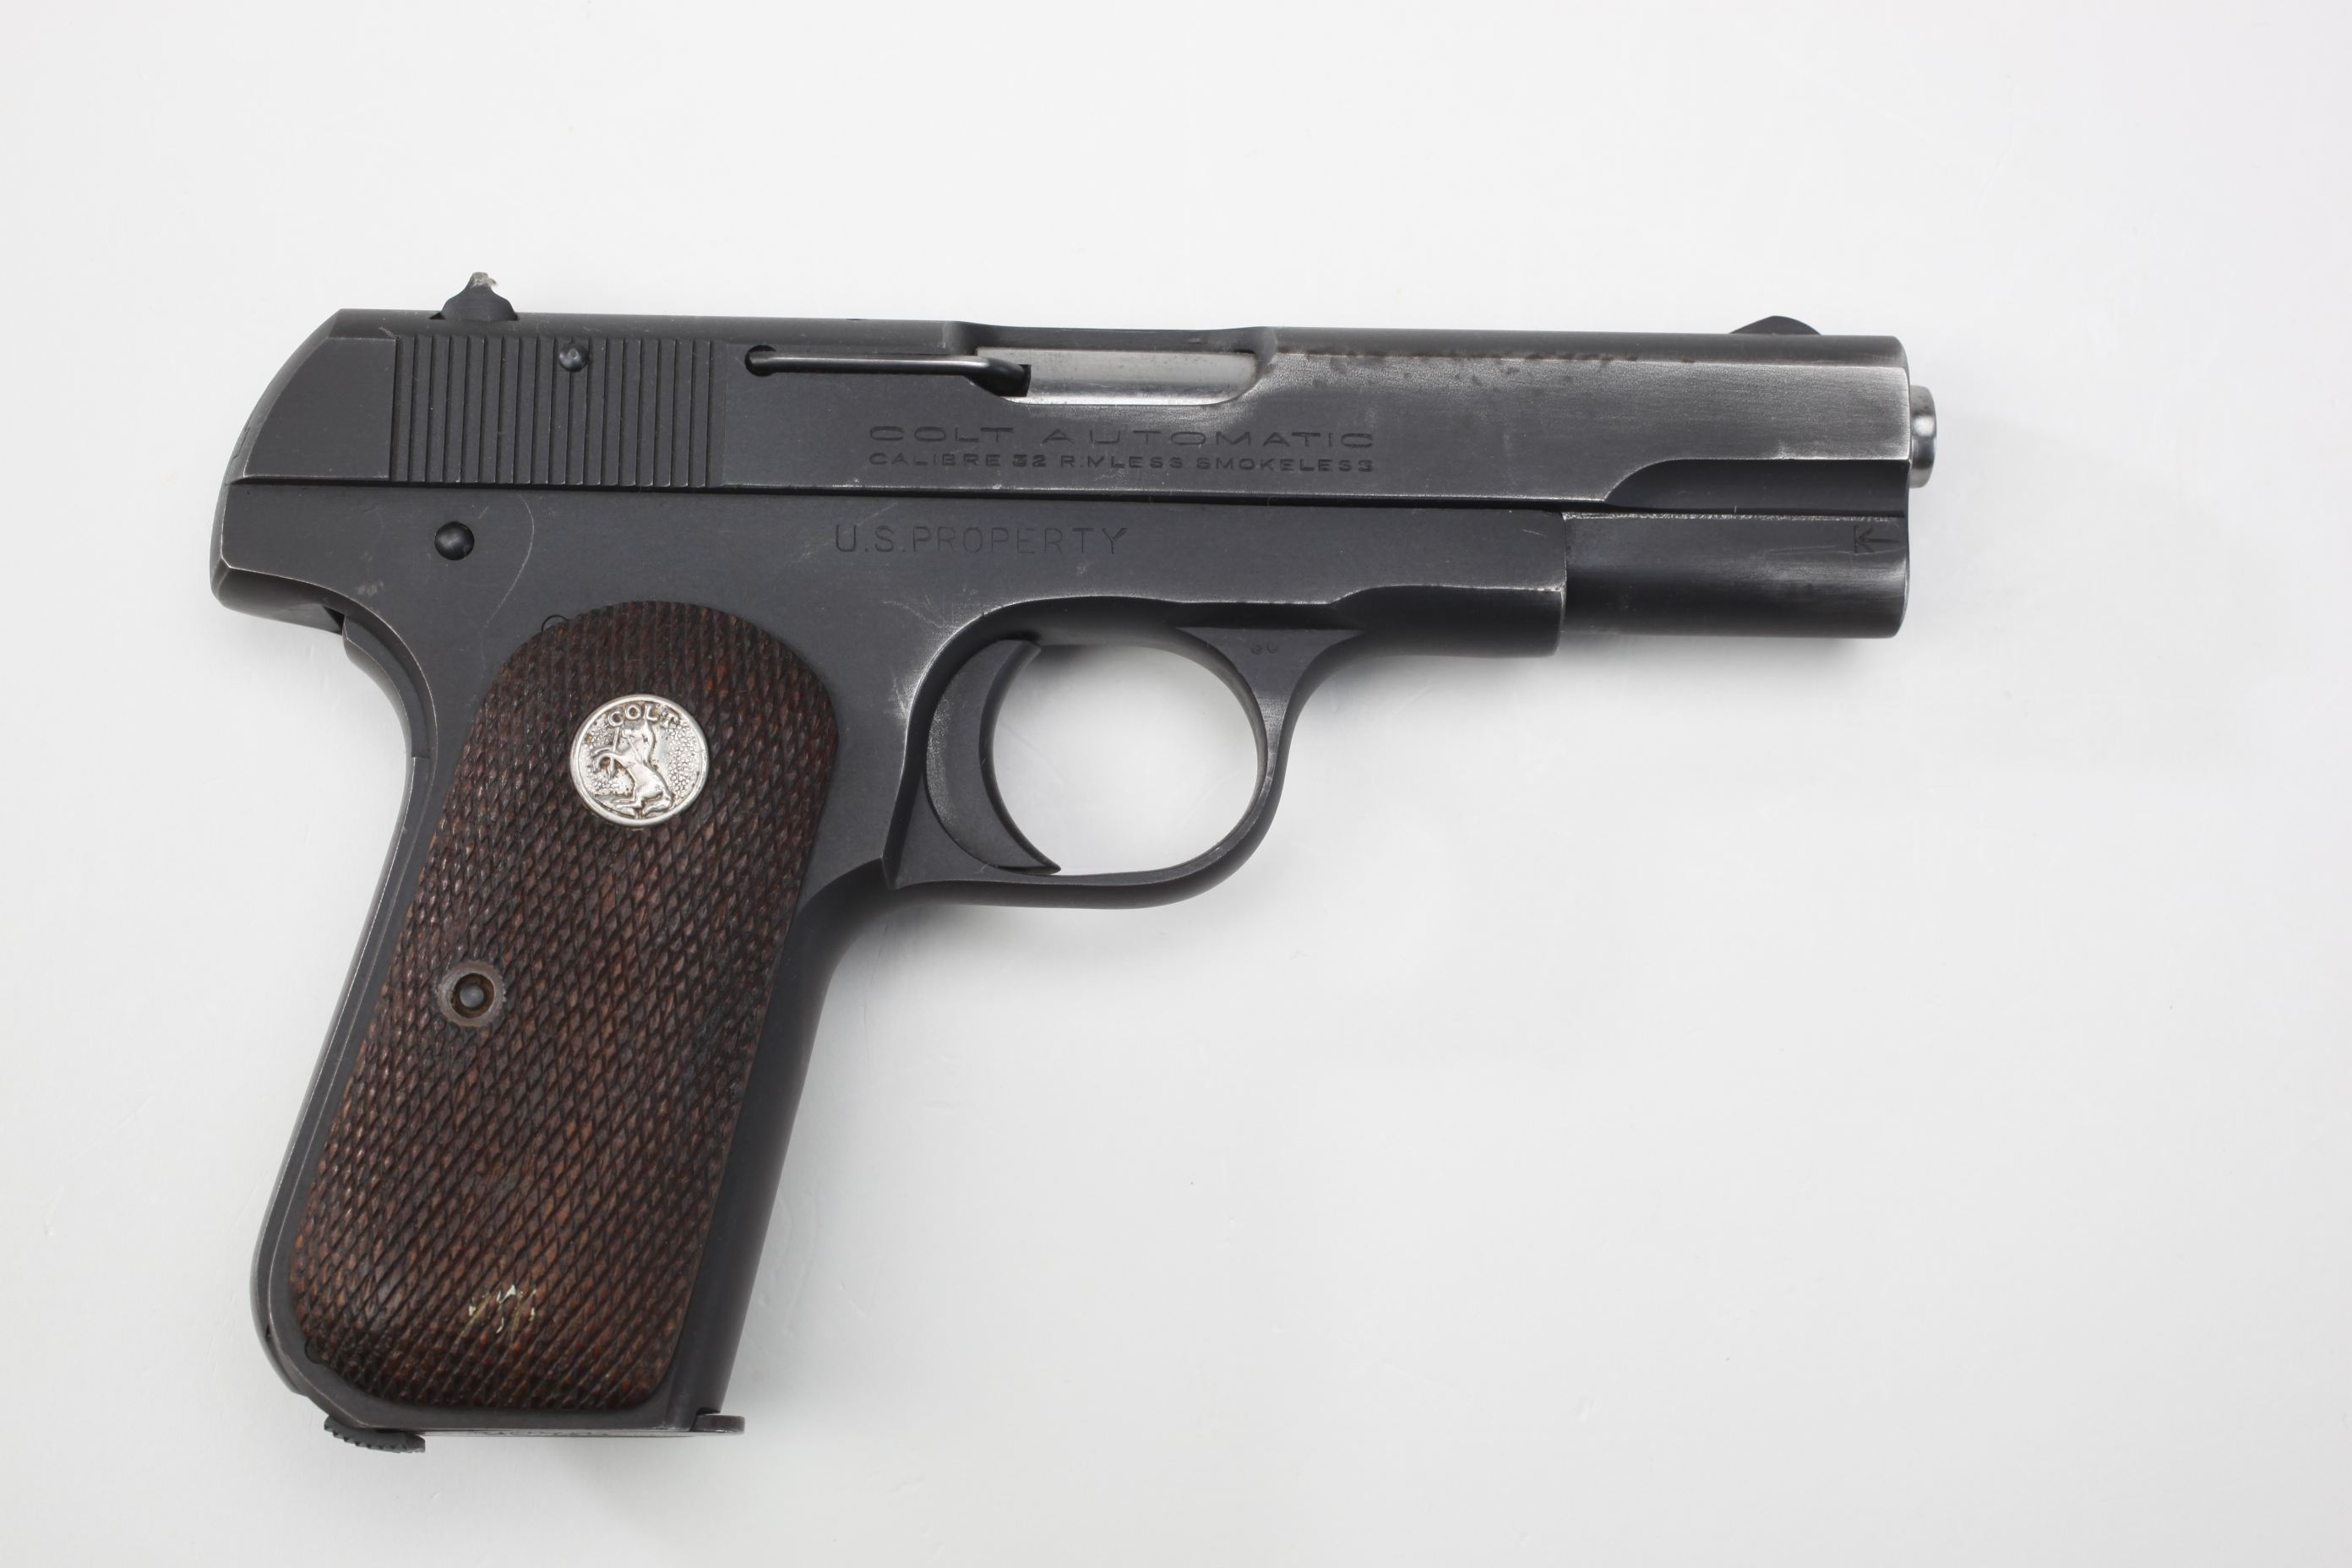 General Bruce Palmer, Jr.'s U.S./Colt M1903 Semi-Automatic General Officer's Pistol